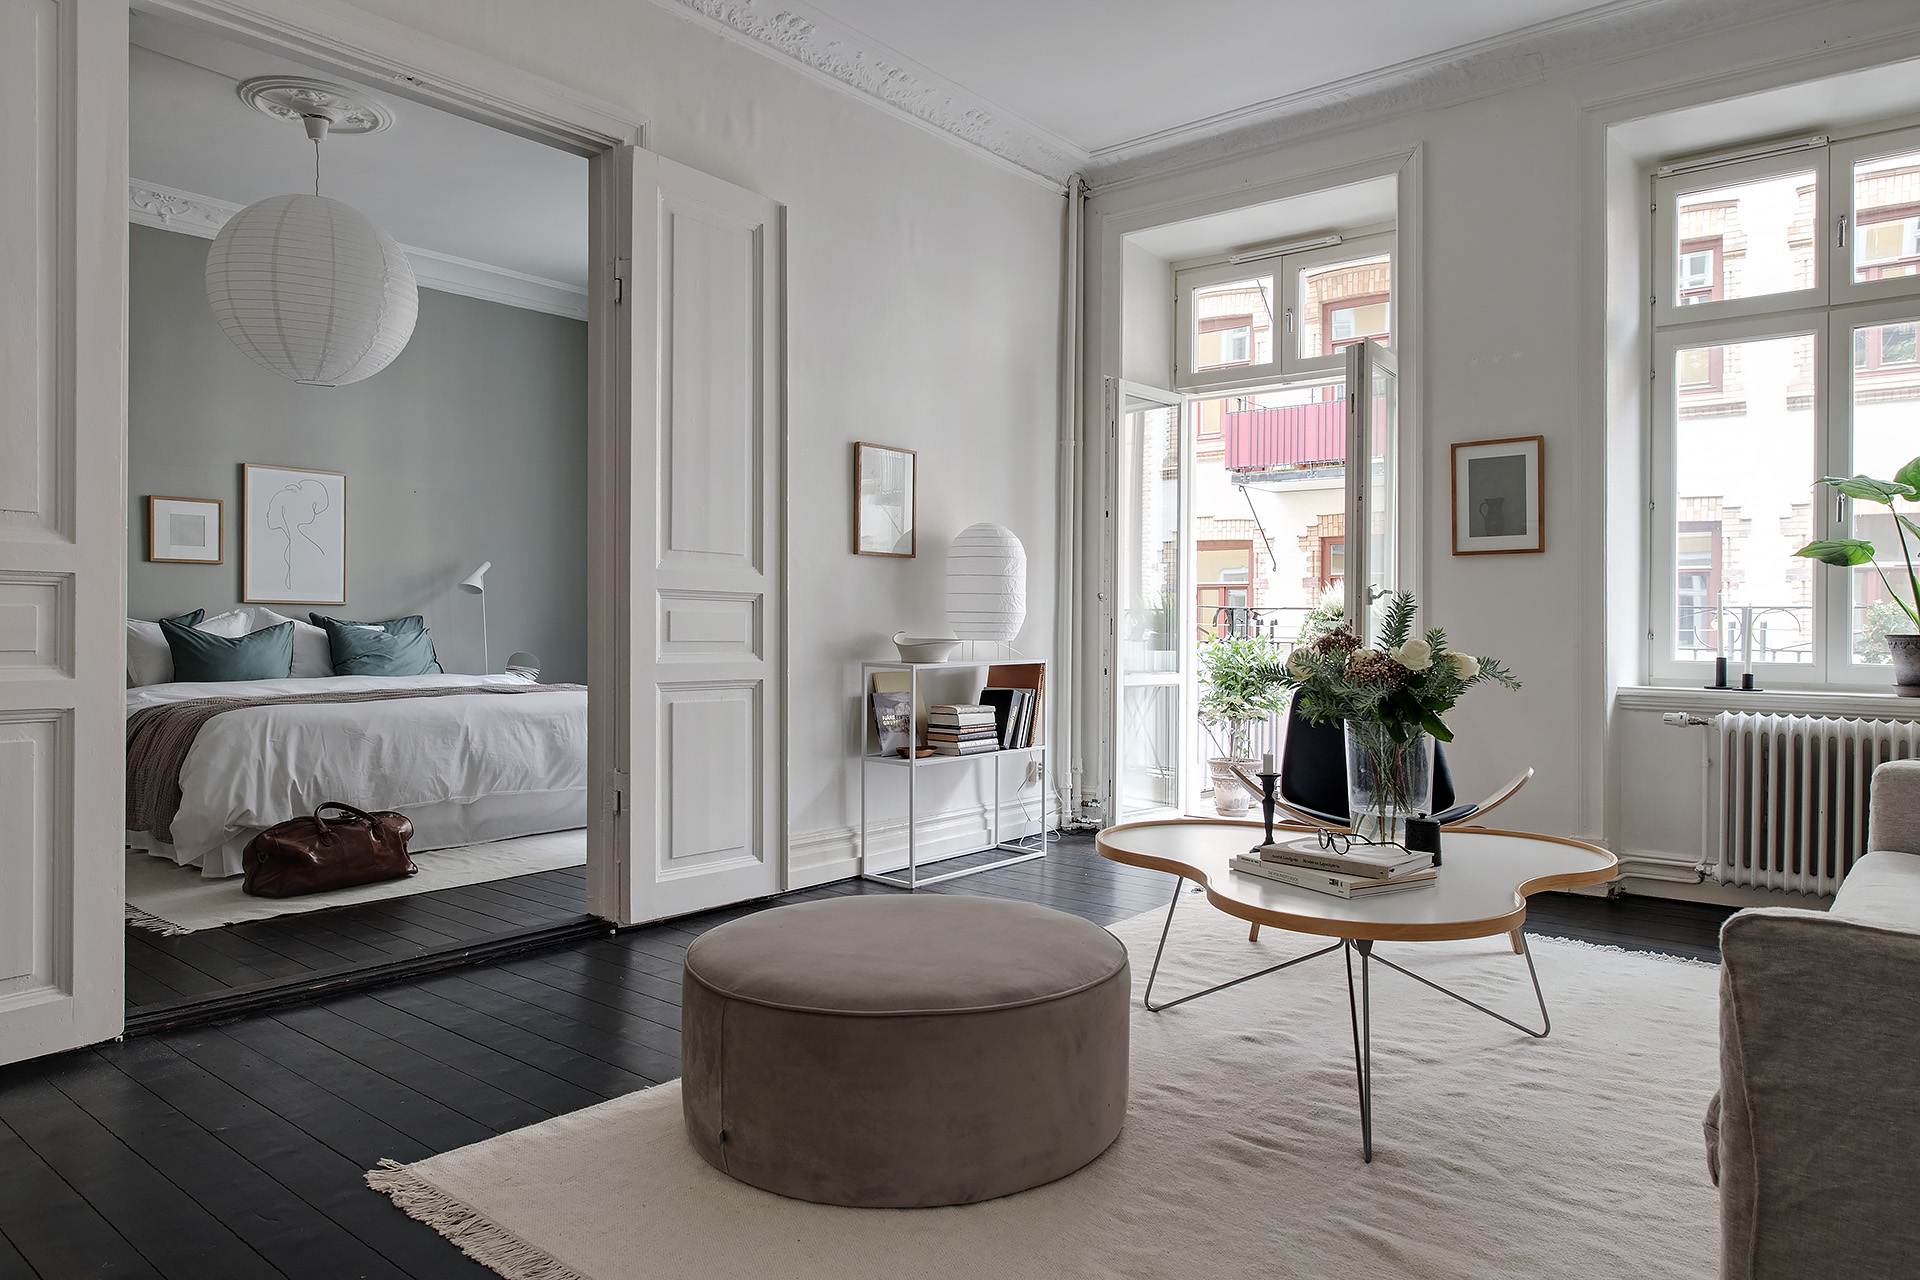 Minimal Home With A Grey Bedroom